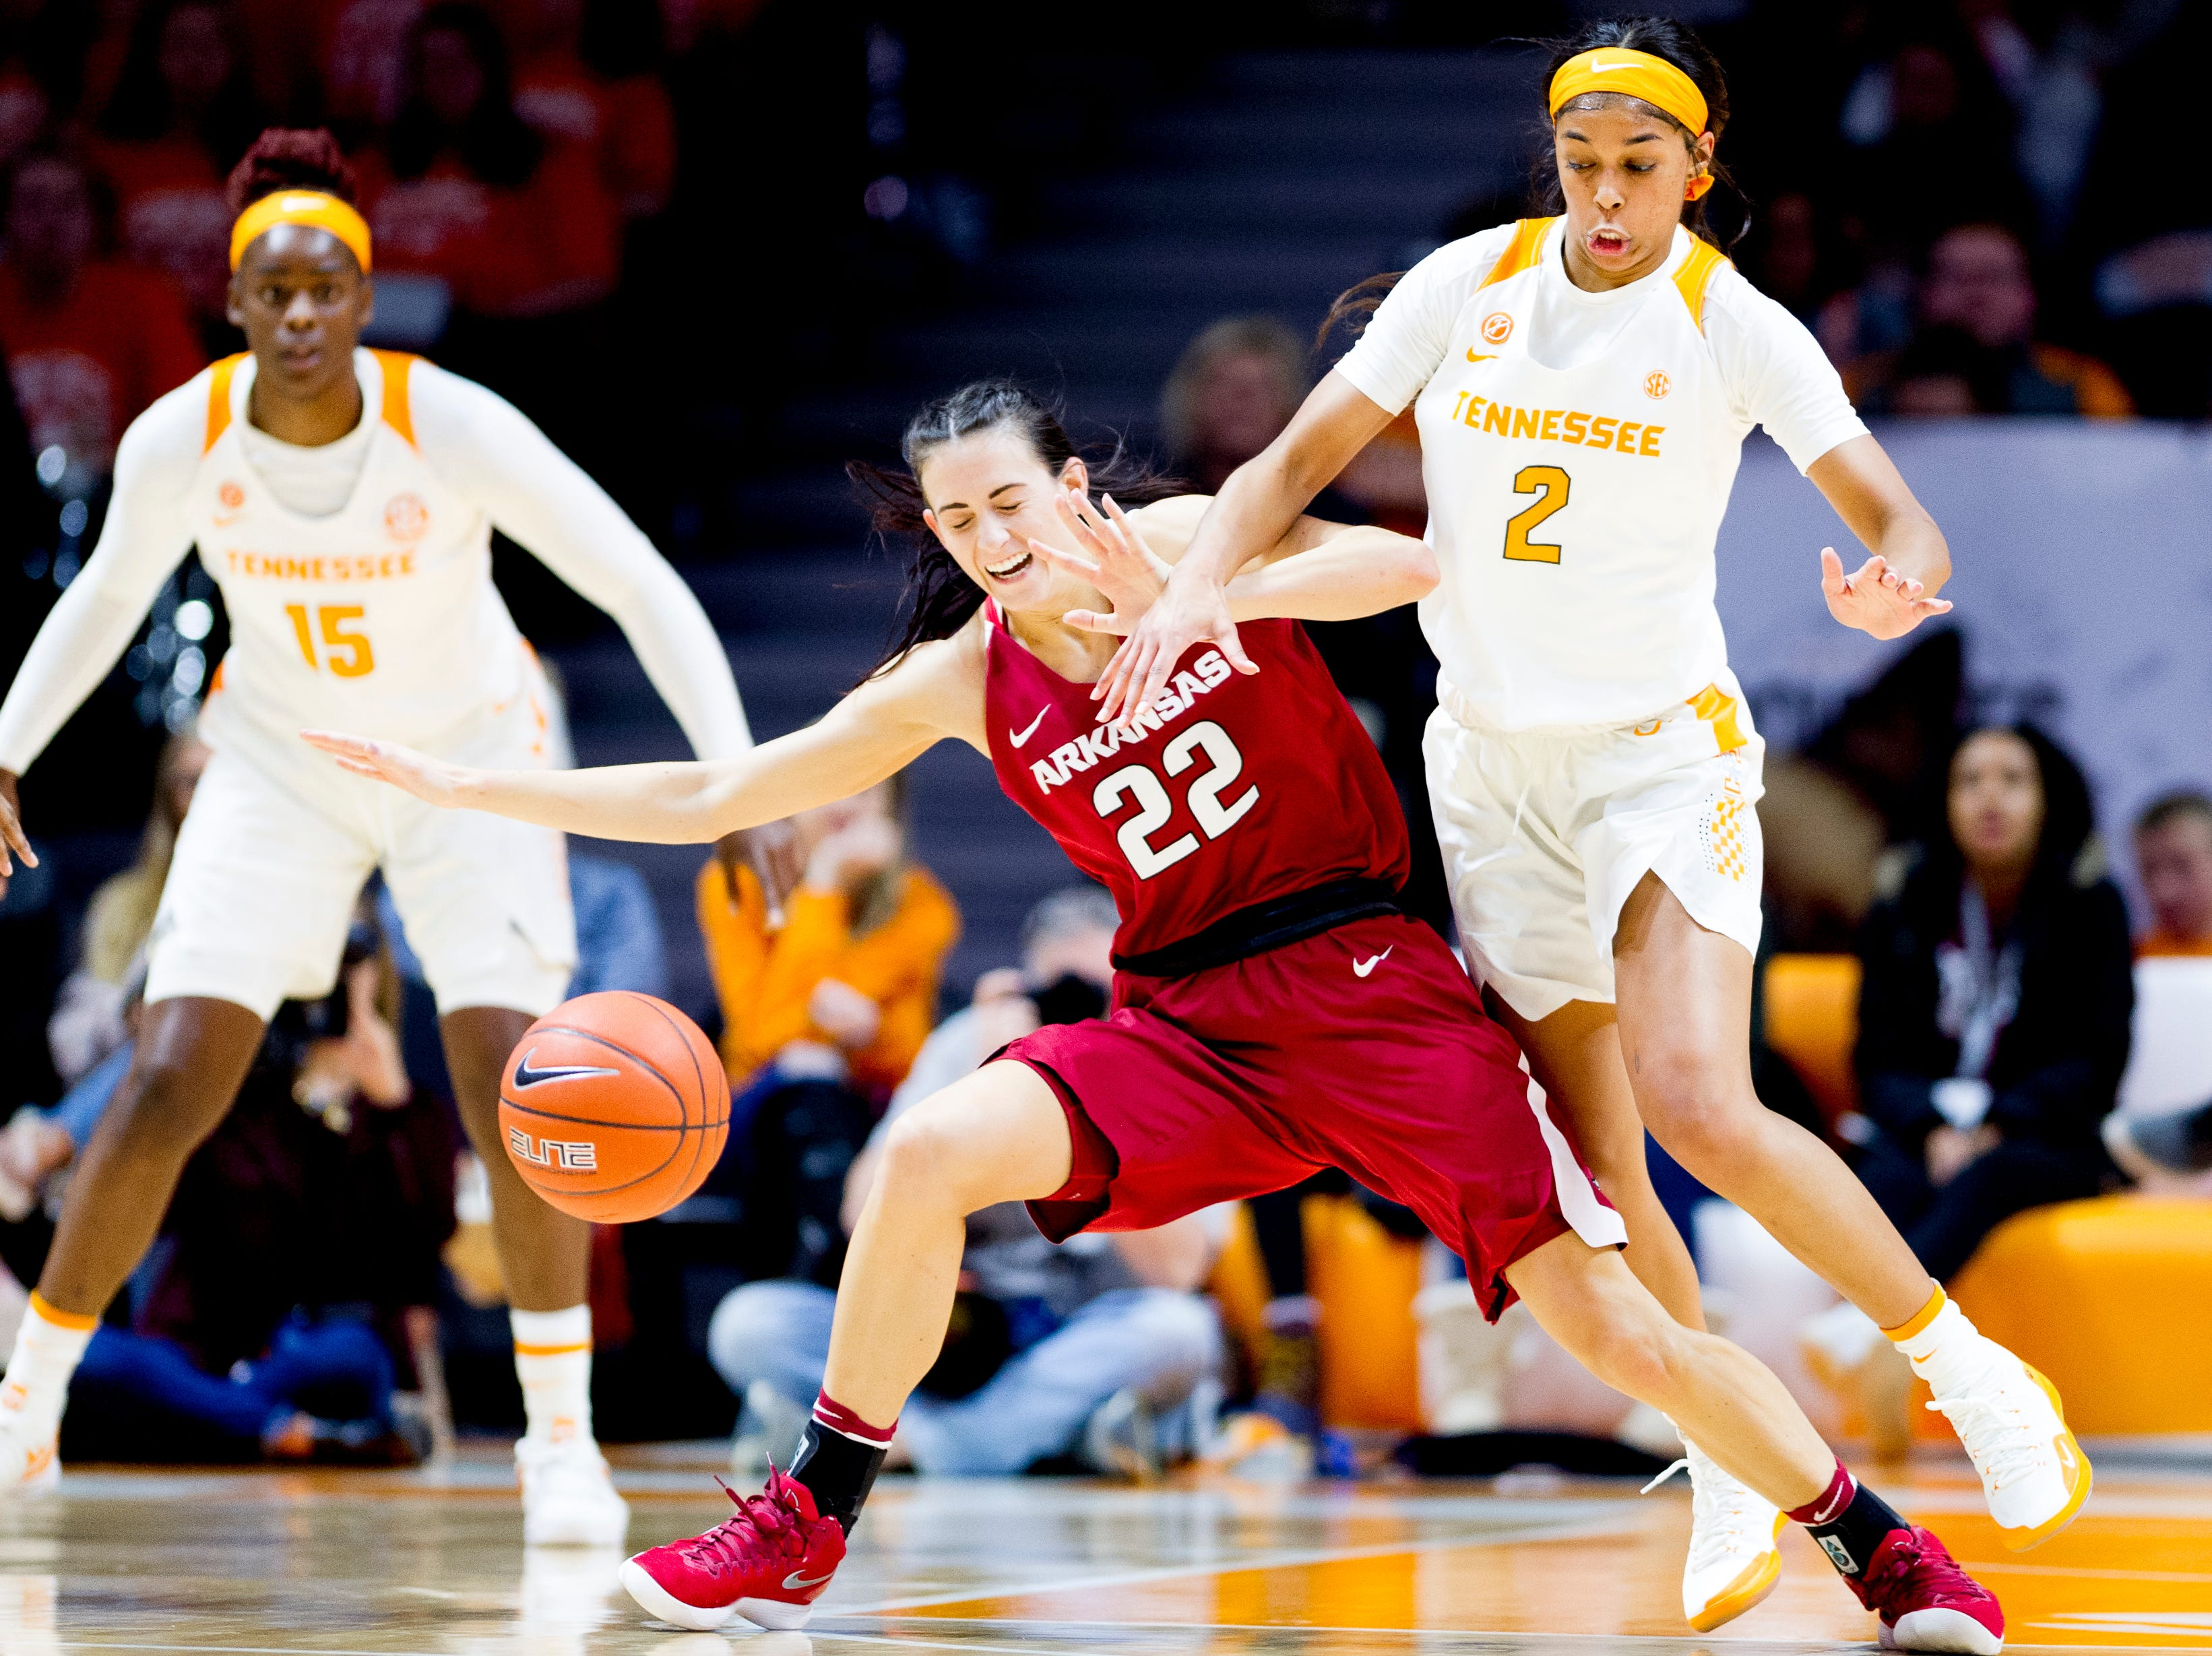 Arkansas guard/forward Bailey Zimmerman (22) loses control of the ball while defended against by Tennessee guard Evina Westbrook (2) during a game between Tennessee and Arkansas at Thompson-Boling Arena in Knoxville, Tennessee on Monday, January 21, 2019.